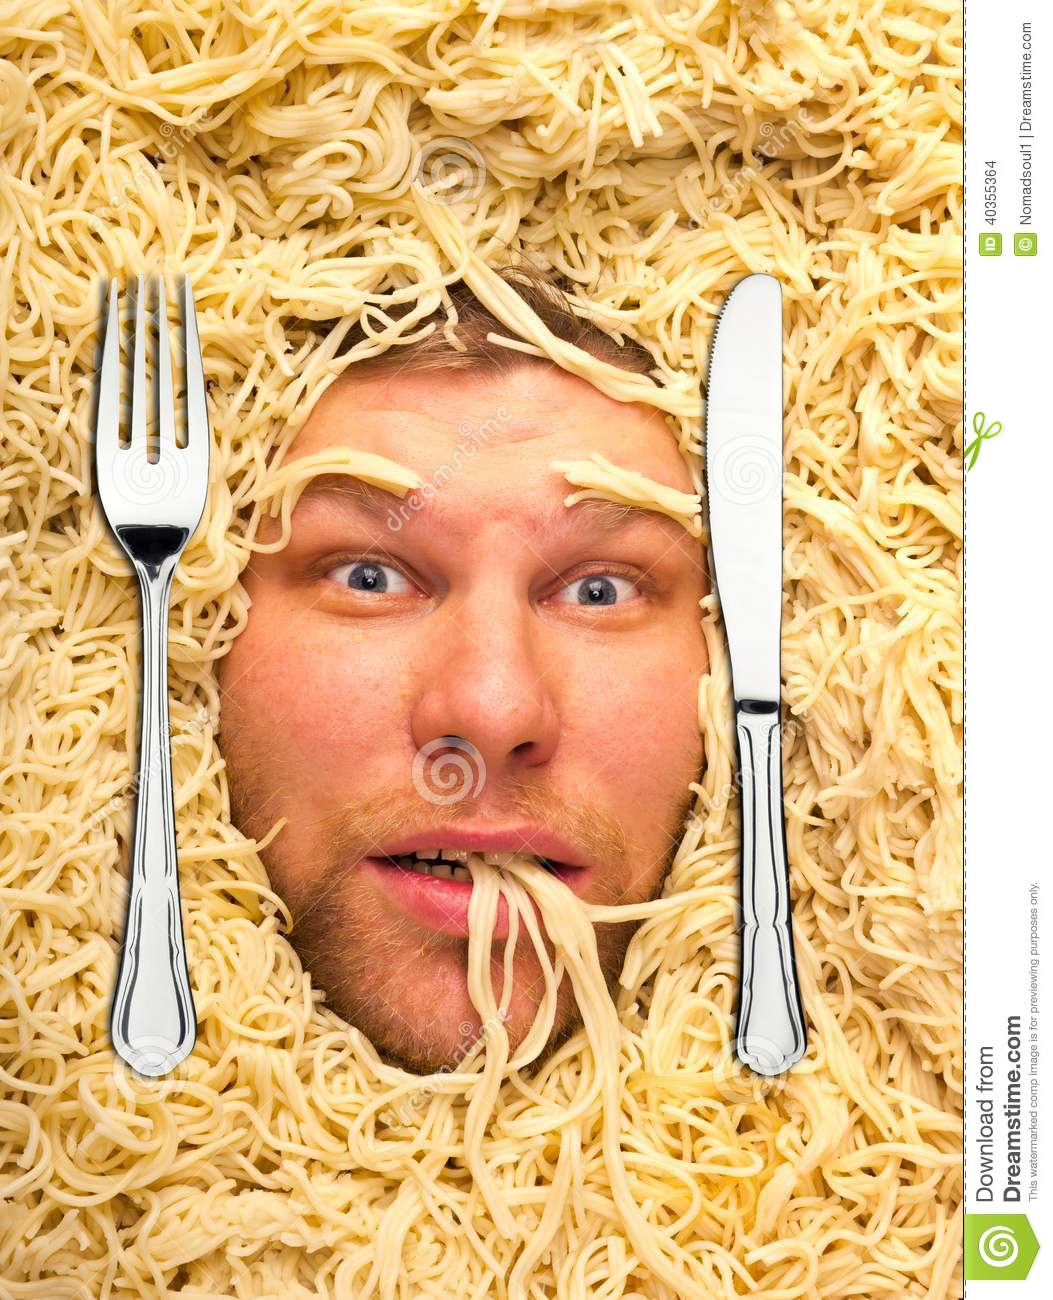 Man s face in pasta, closeup